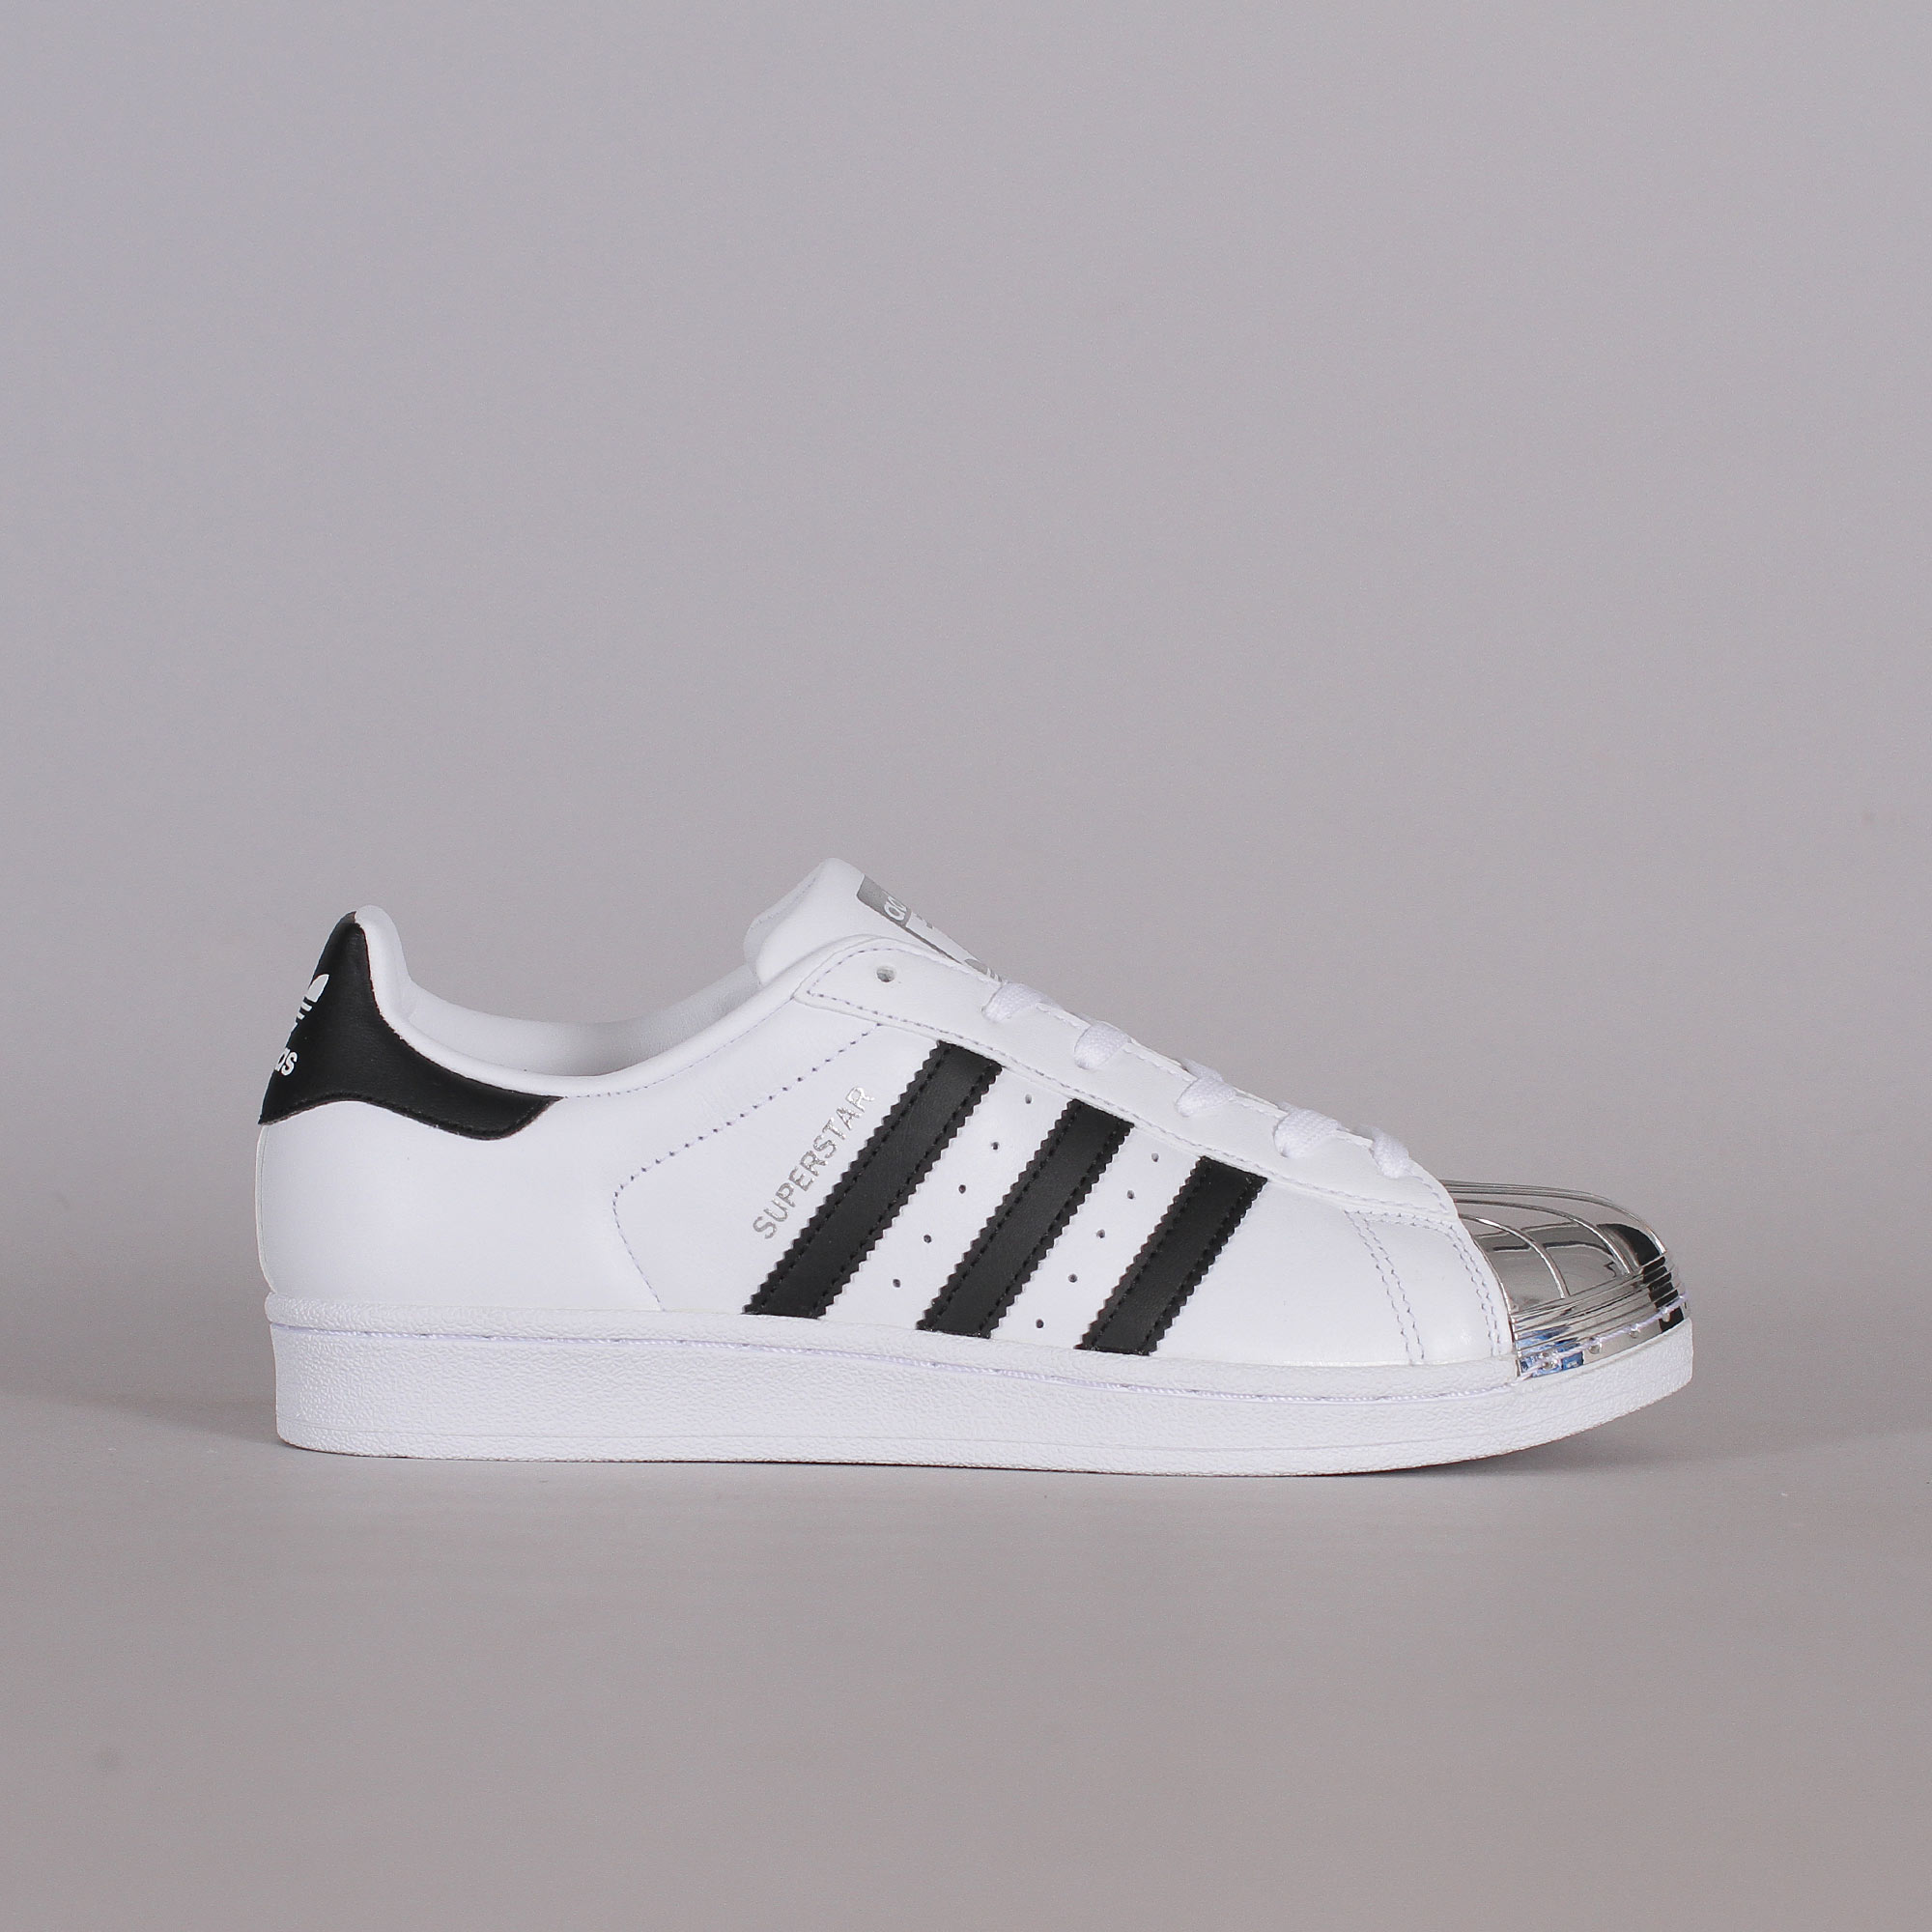 adidas Originals Superstar 80s Metal Toe | Svart | Sneakers